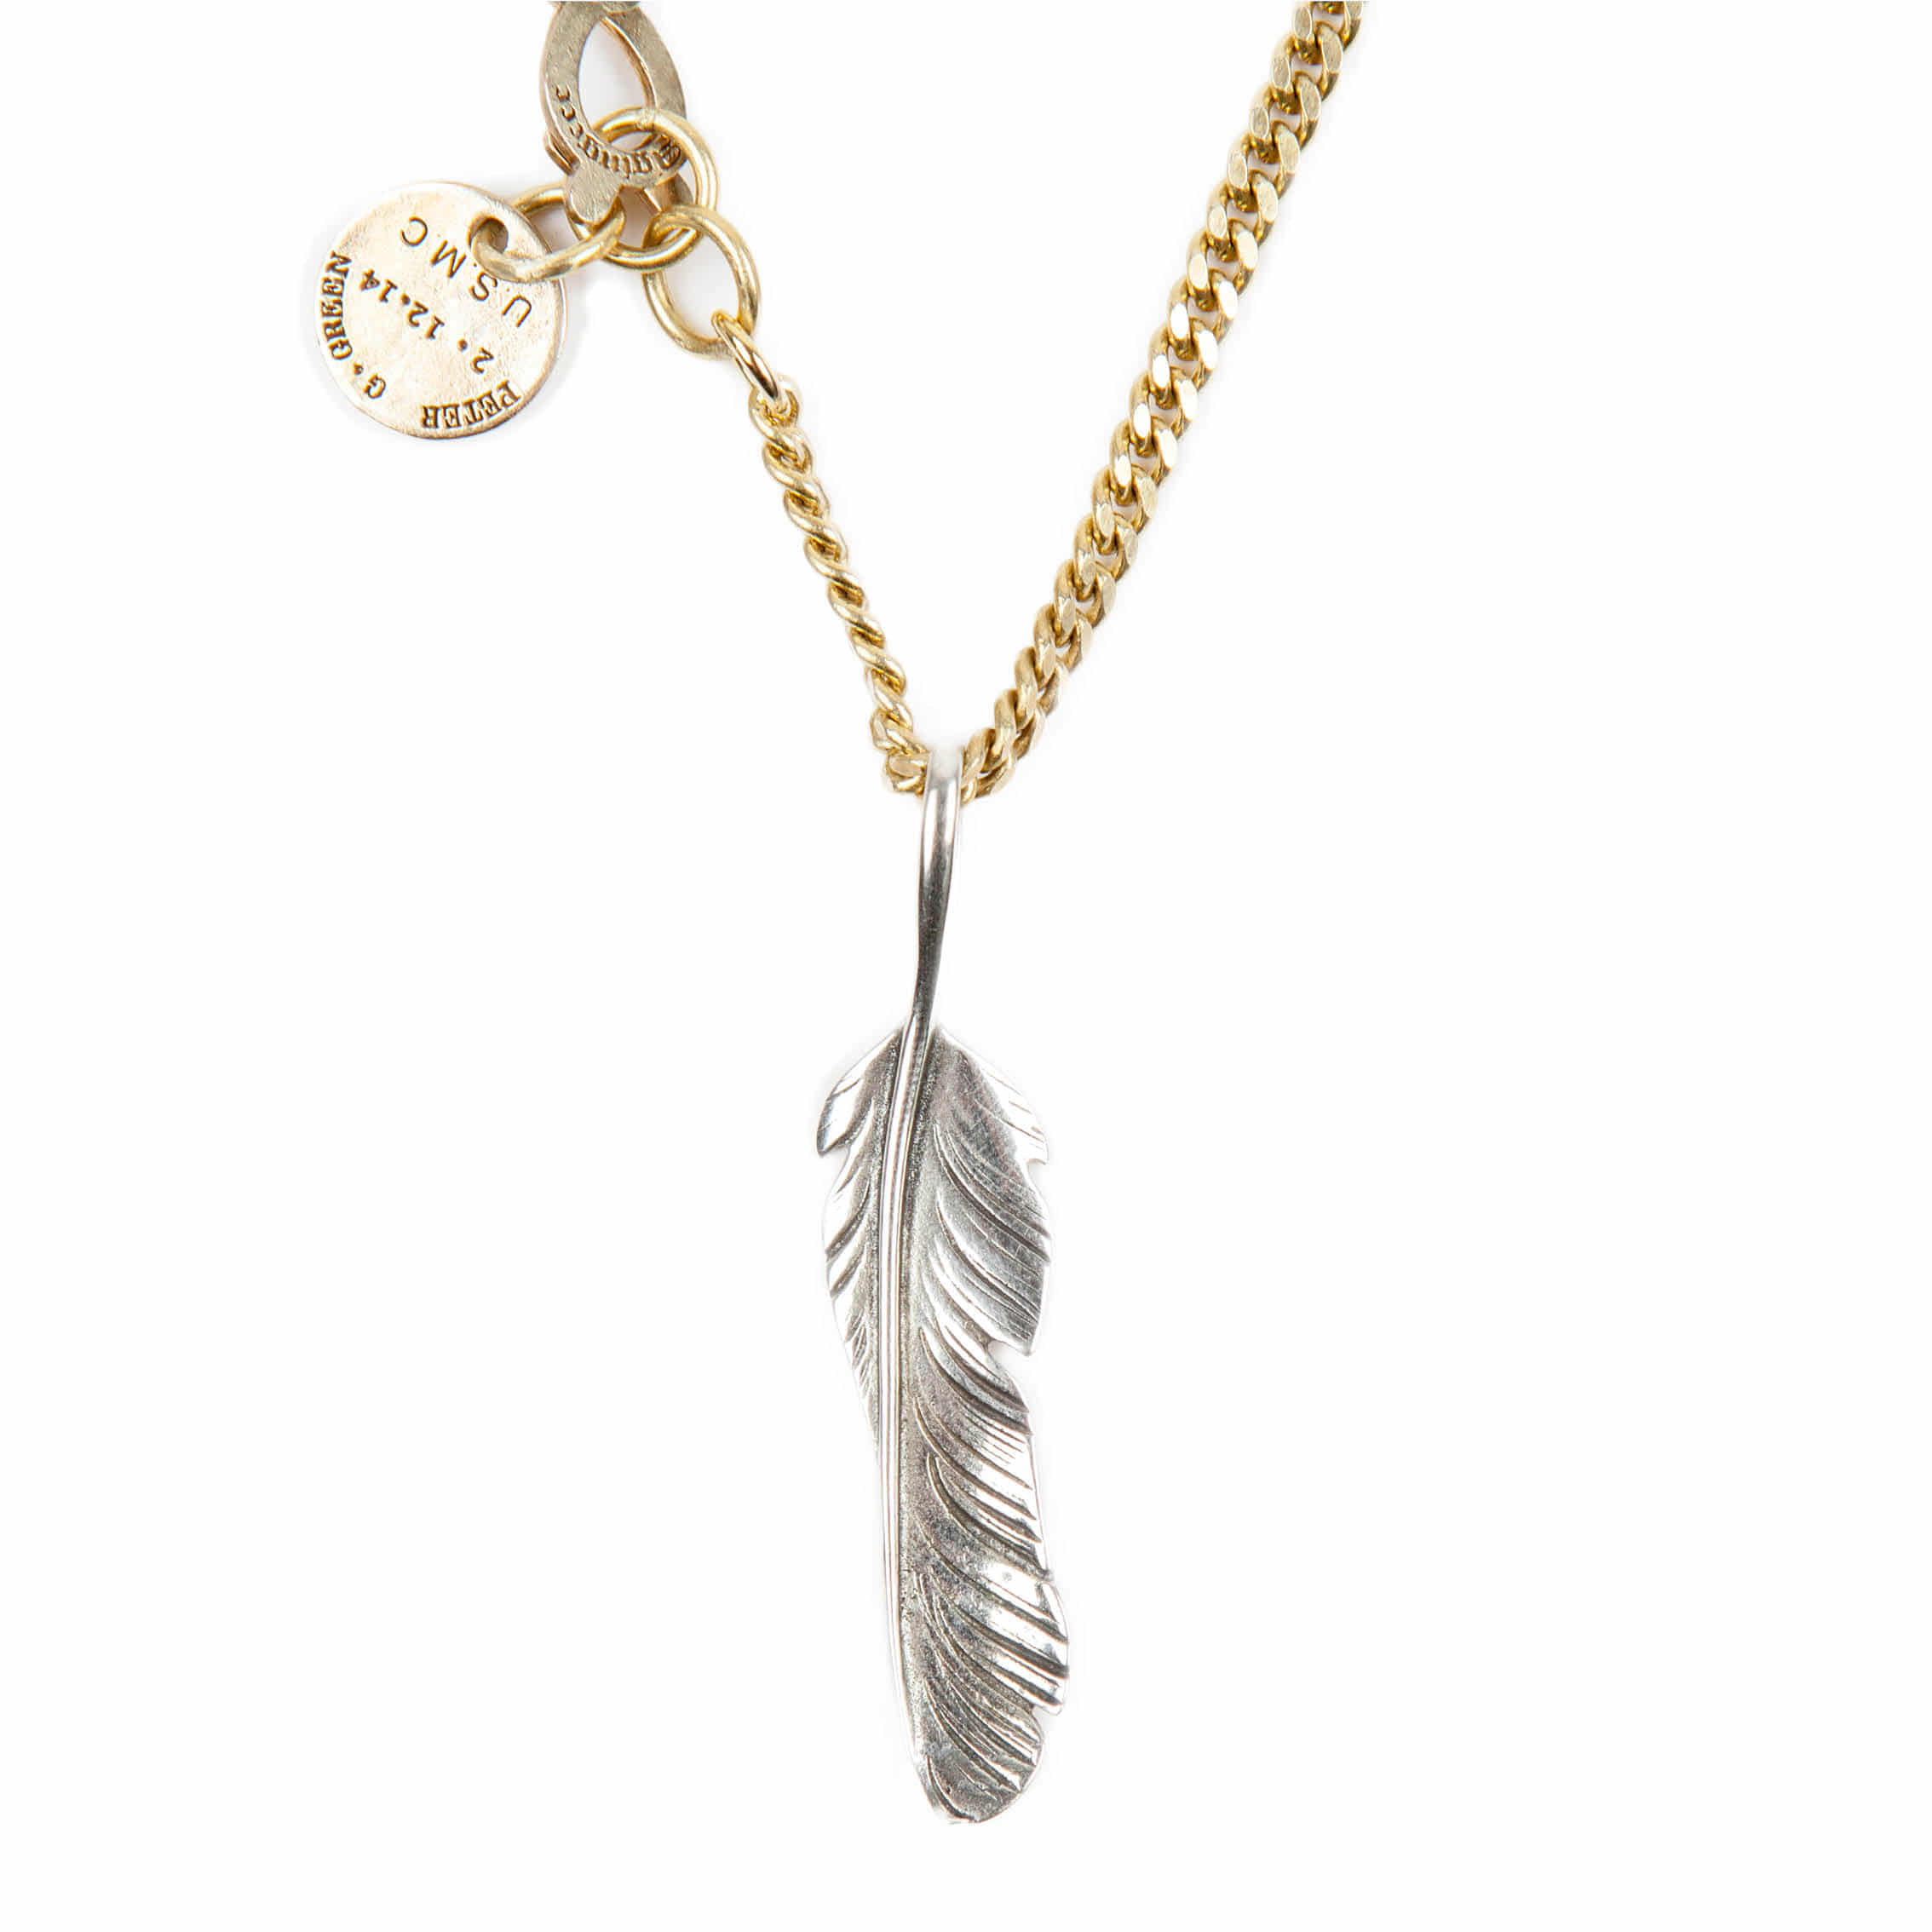 AGINGCCC - 254# SOLIDBRASS FEATHER NECKLACE-NO.1